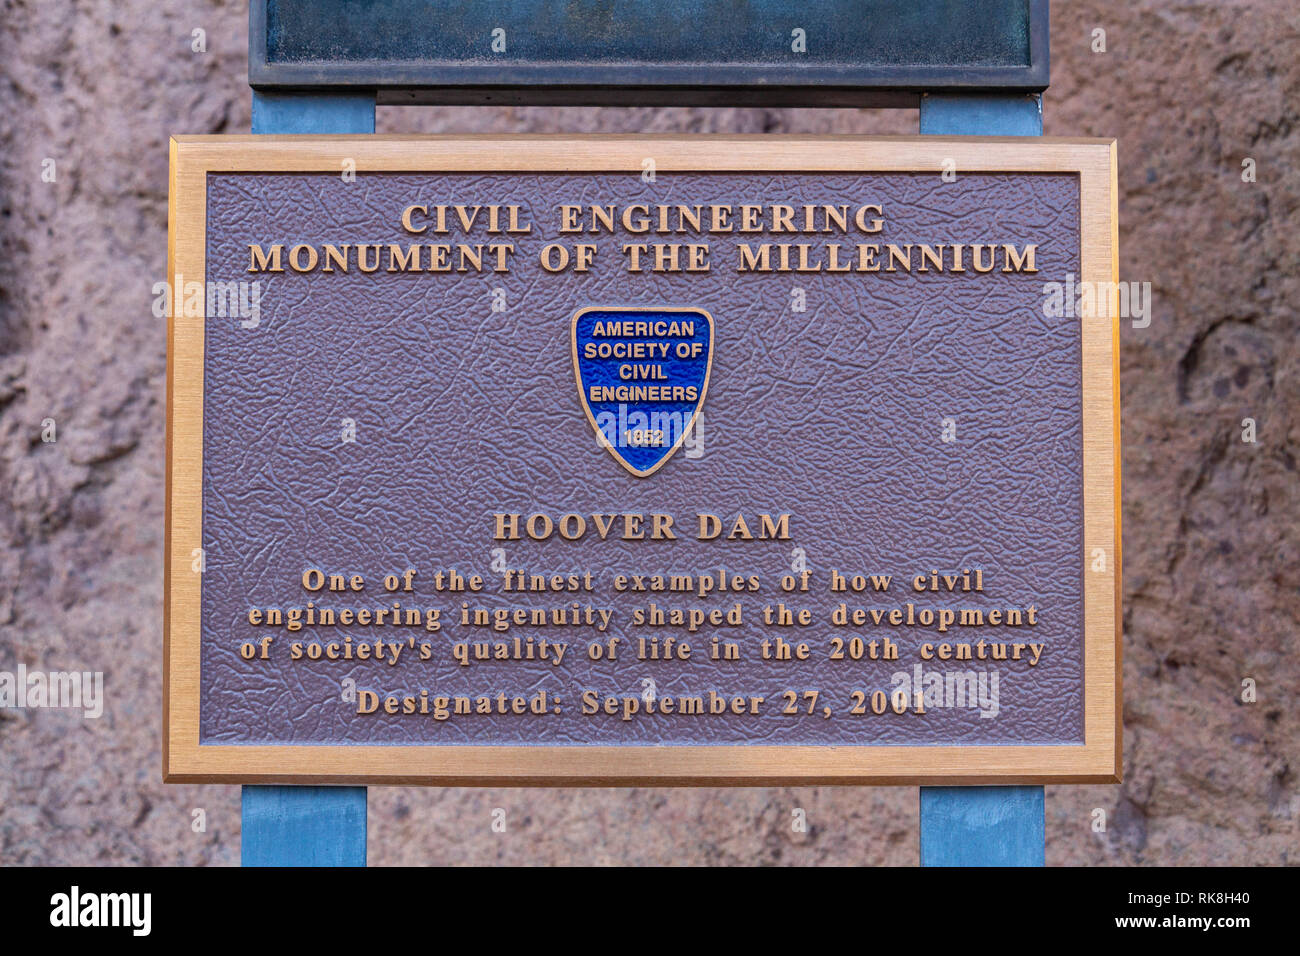 A Civil Engineering Monument of the Millennium plaque (2001) in Hoover Dam, Nevada, United States. - Stock Image